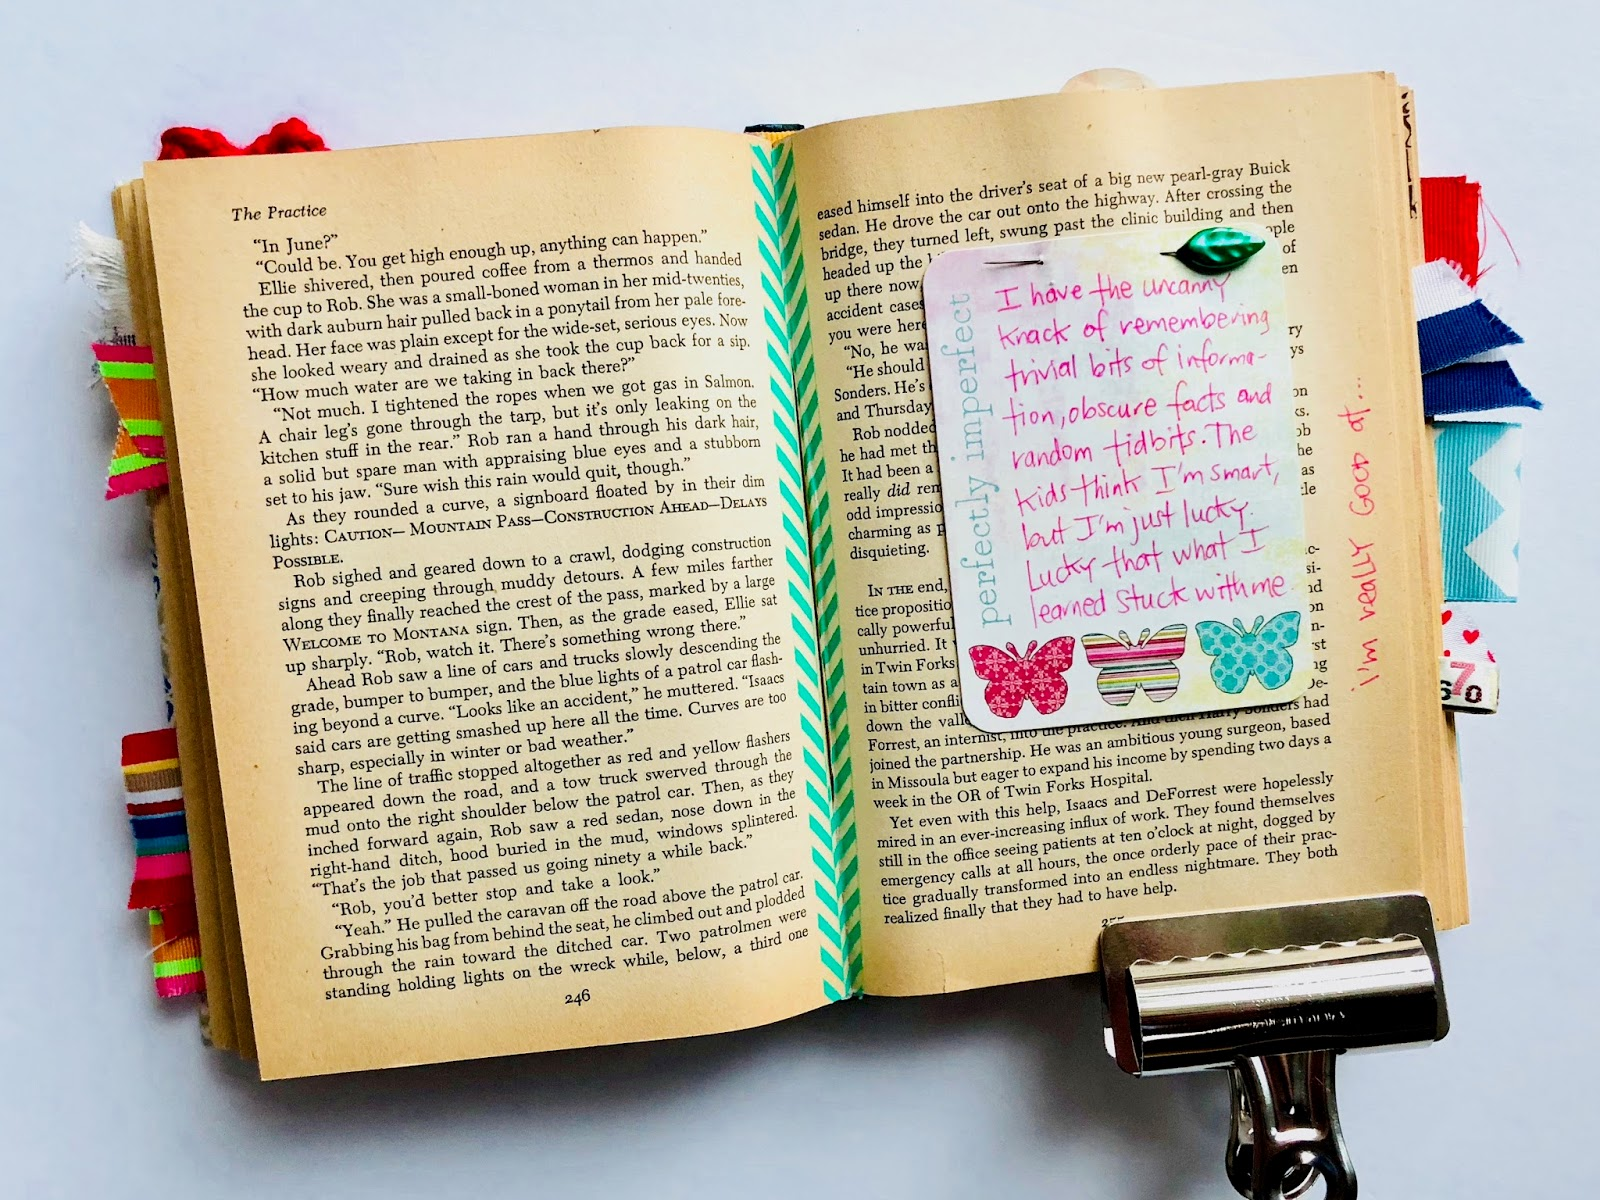 #lists #altered book #upcycle #book #art journal #journaling #list challenge #5 years from now #challenge